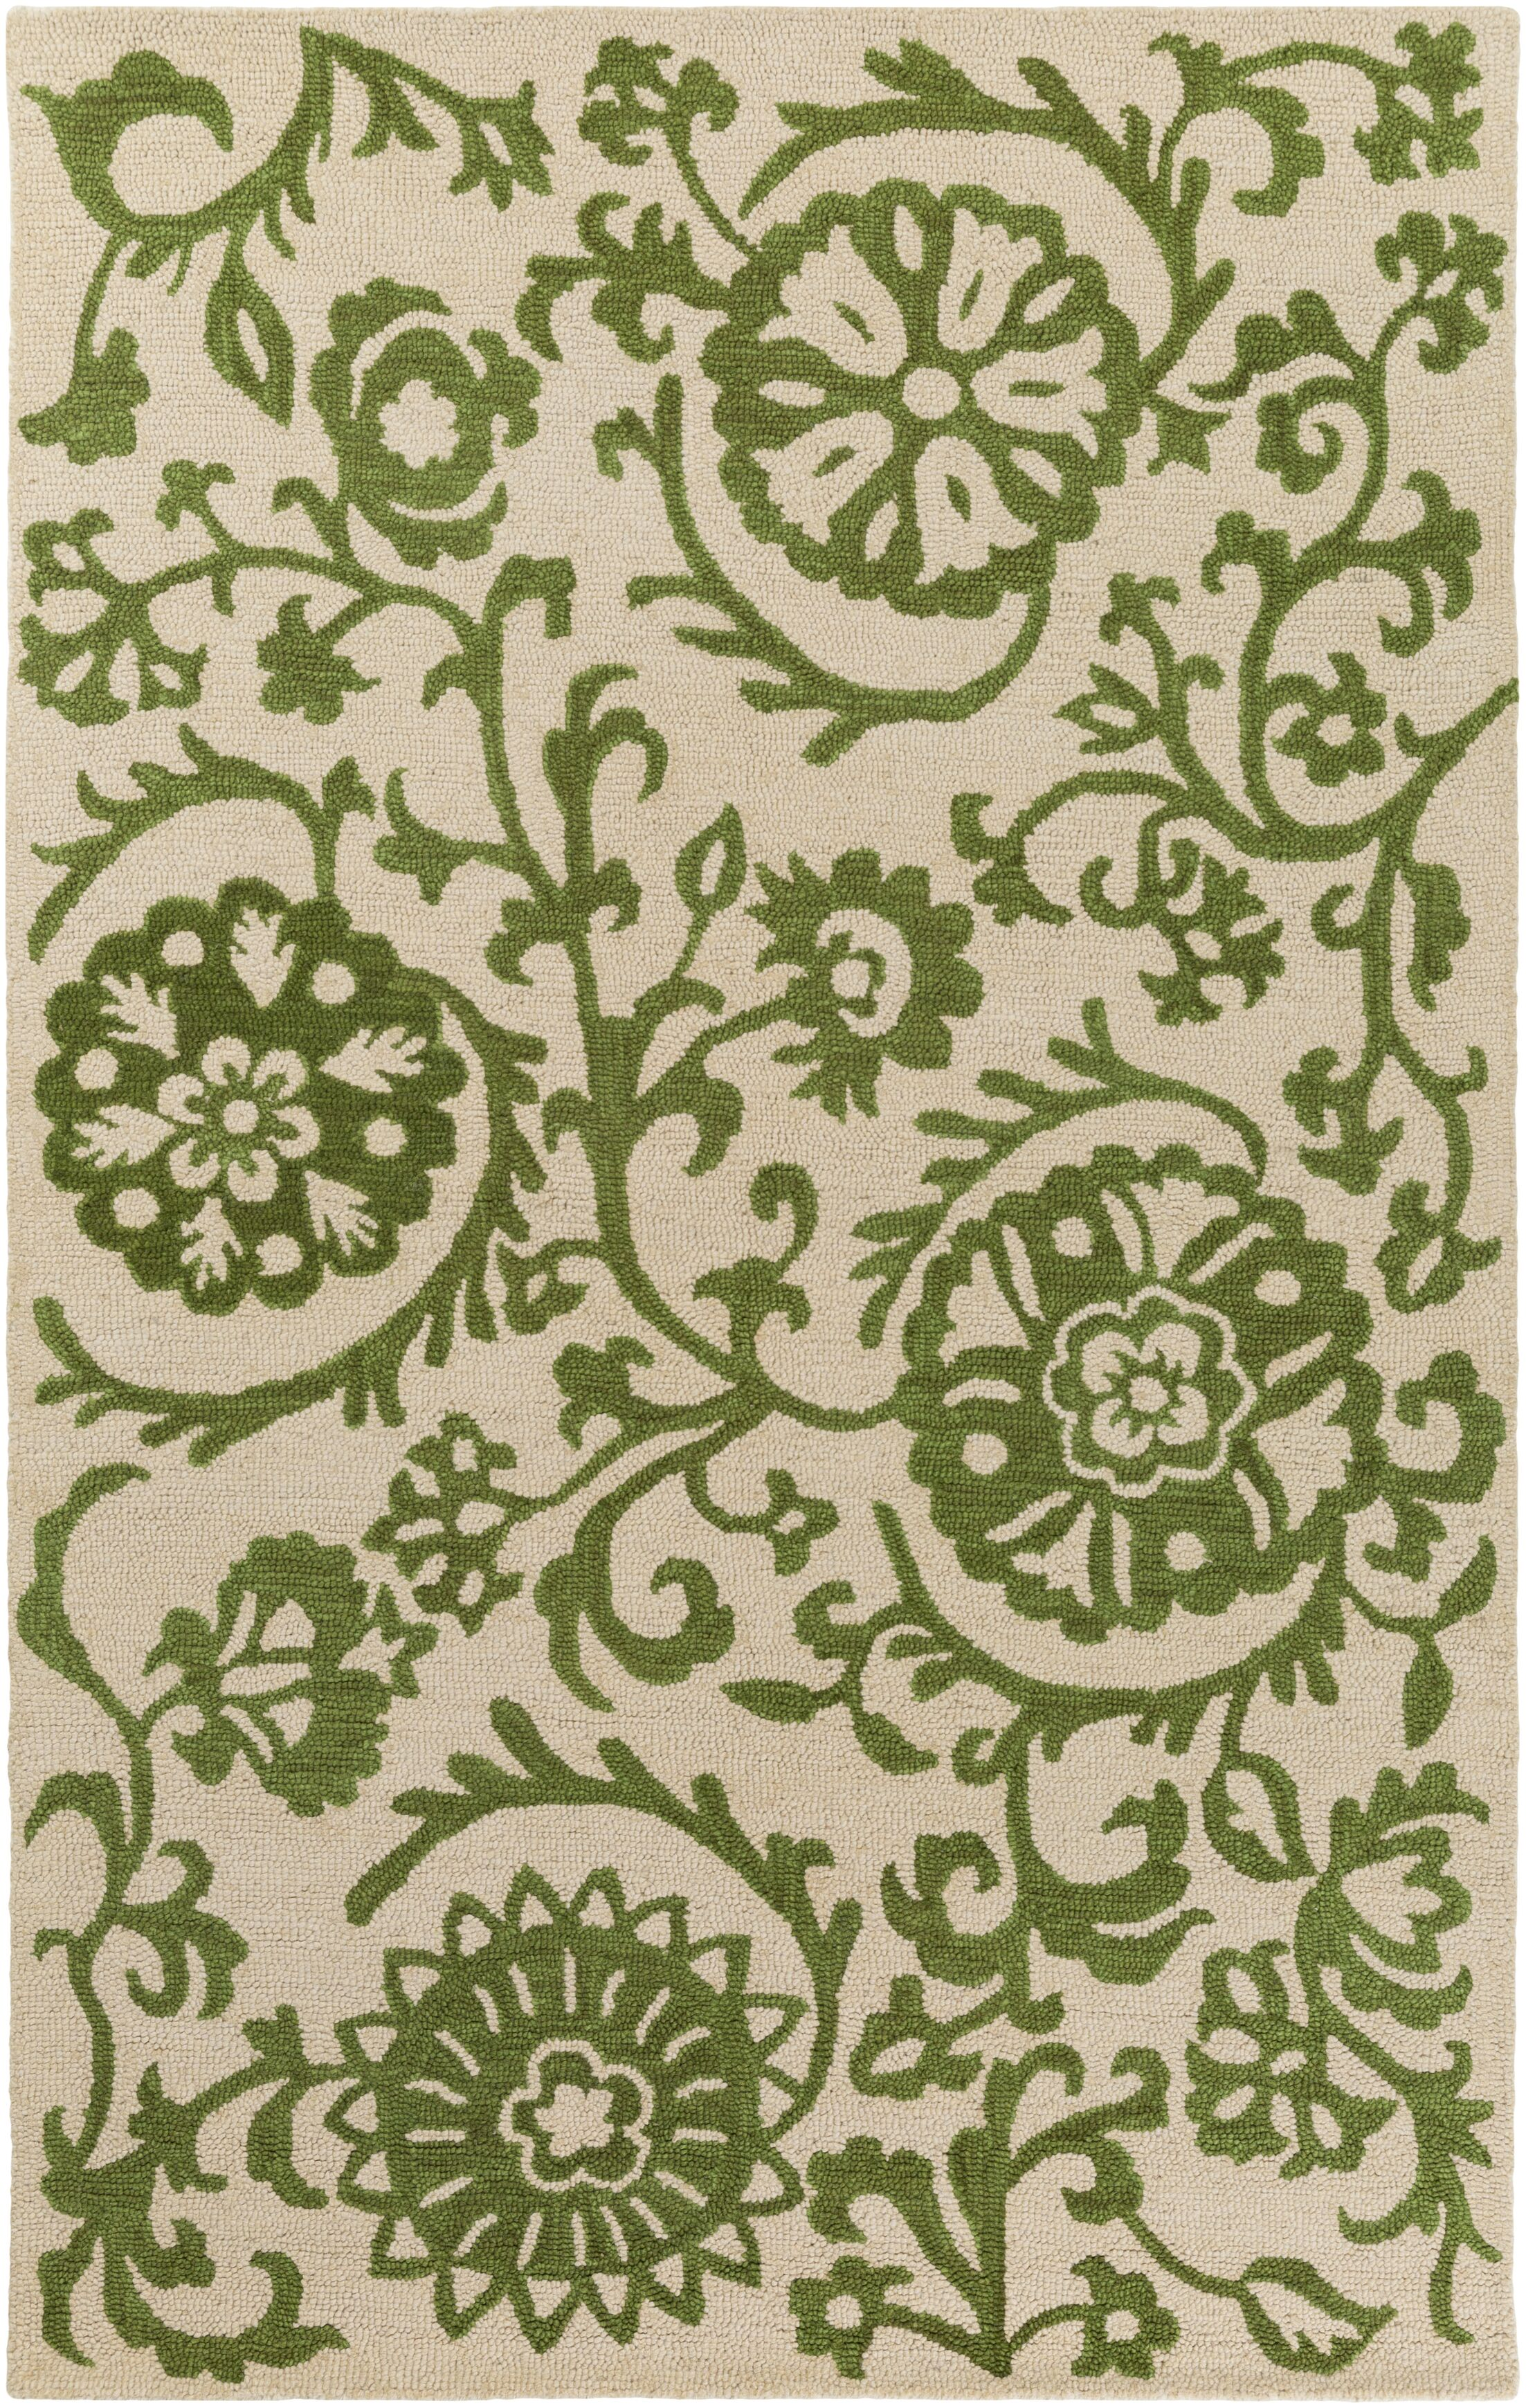 Aylor Hand-Tufted Green/Off-White Area Rug Rug Size: Rectangle 9' x 13'